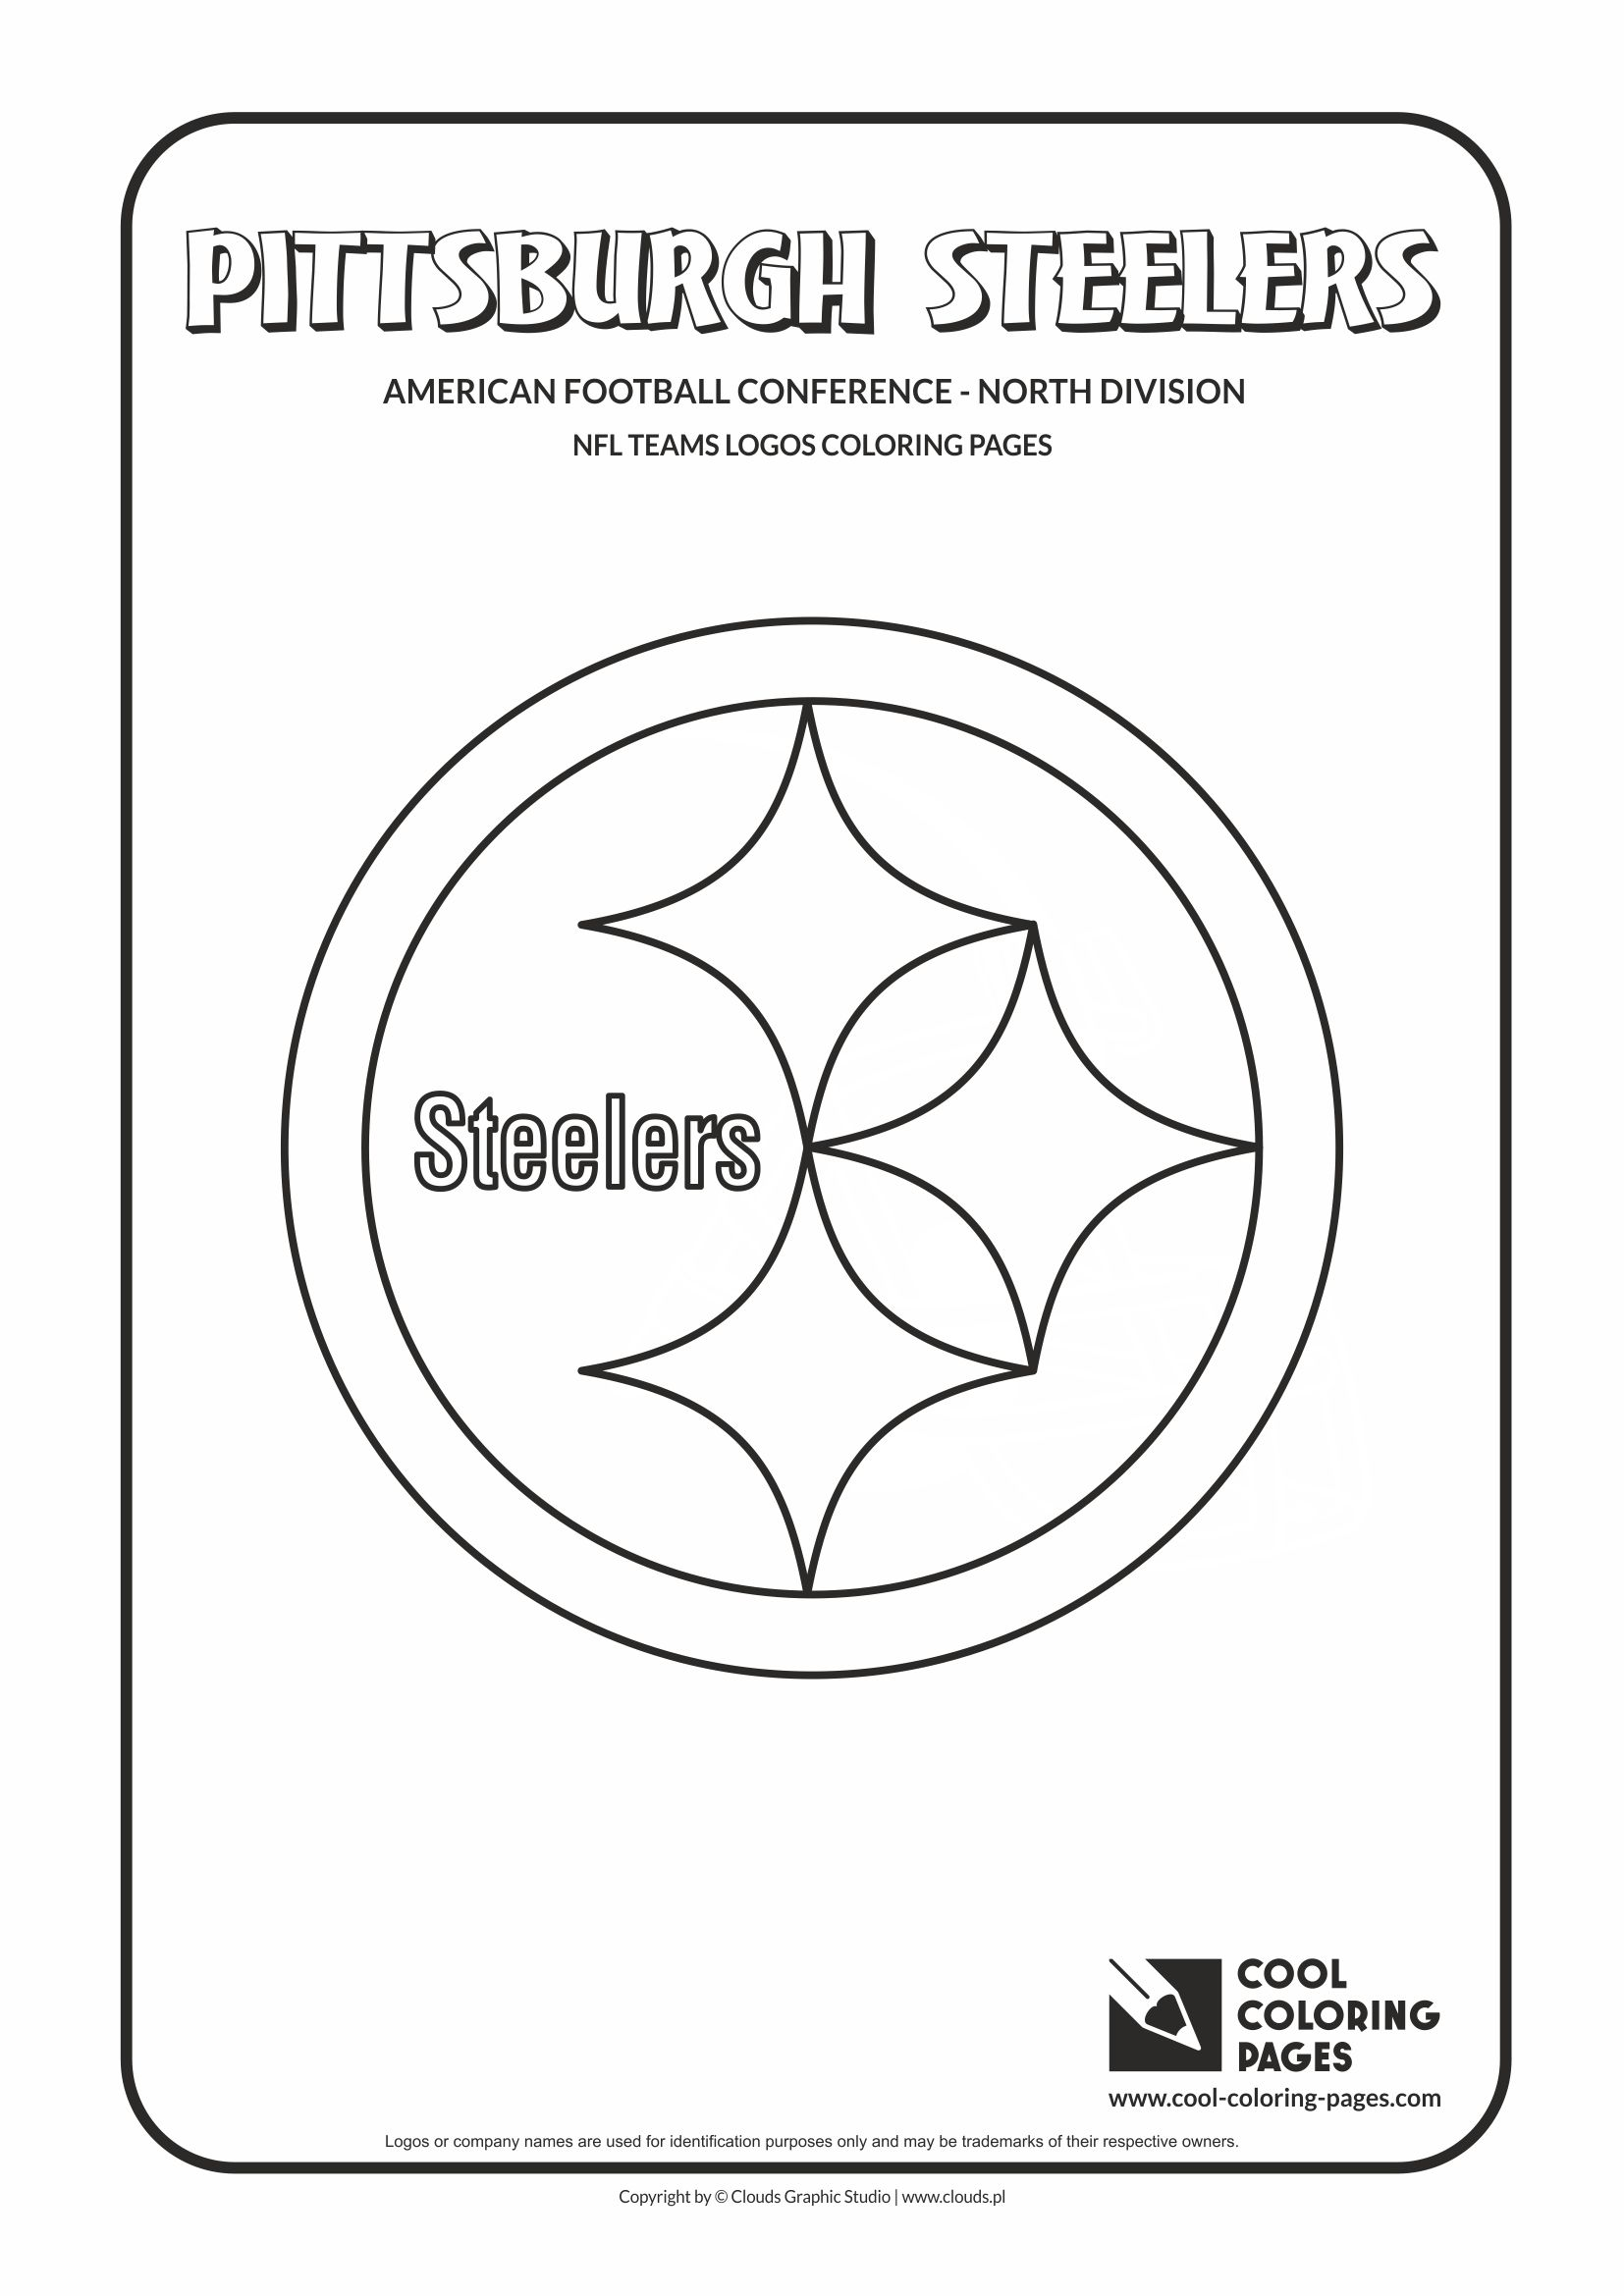 pittsburgh steelers ? nfl american football teams logos coloring ... - Steelers Coloring Pages Printable